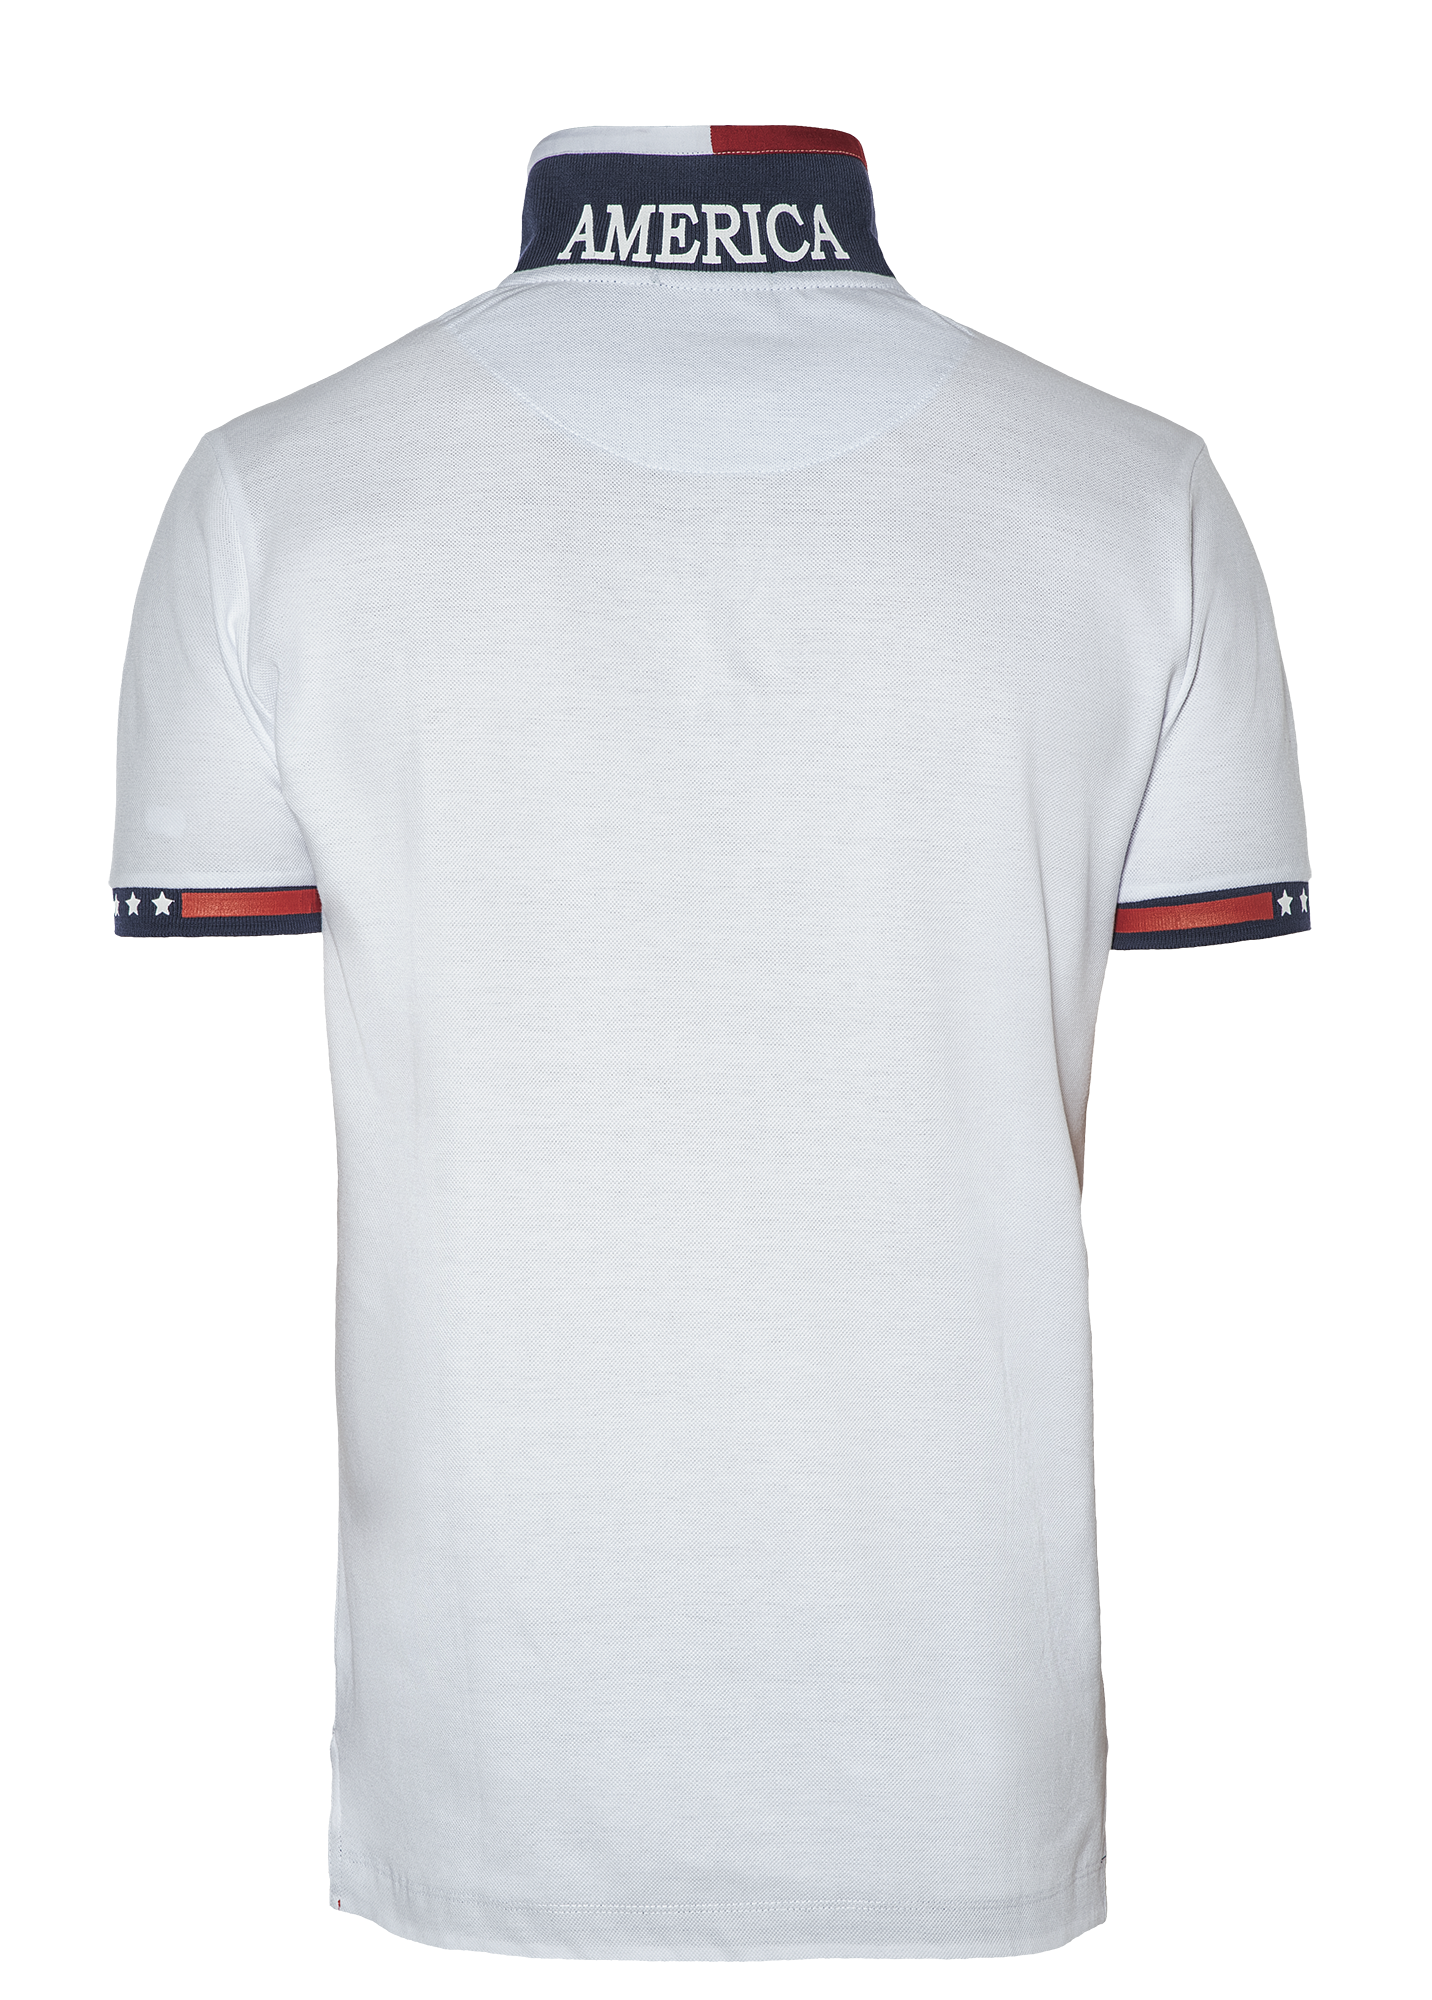 PREMIUM WHITE ICONIC FASHION REGULAR FIT PIQUÉ